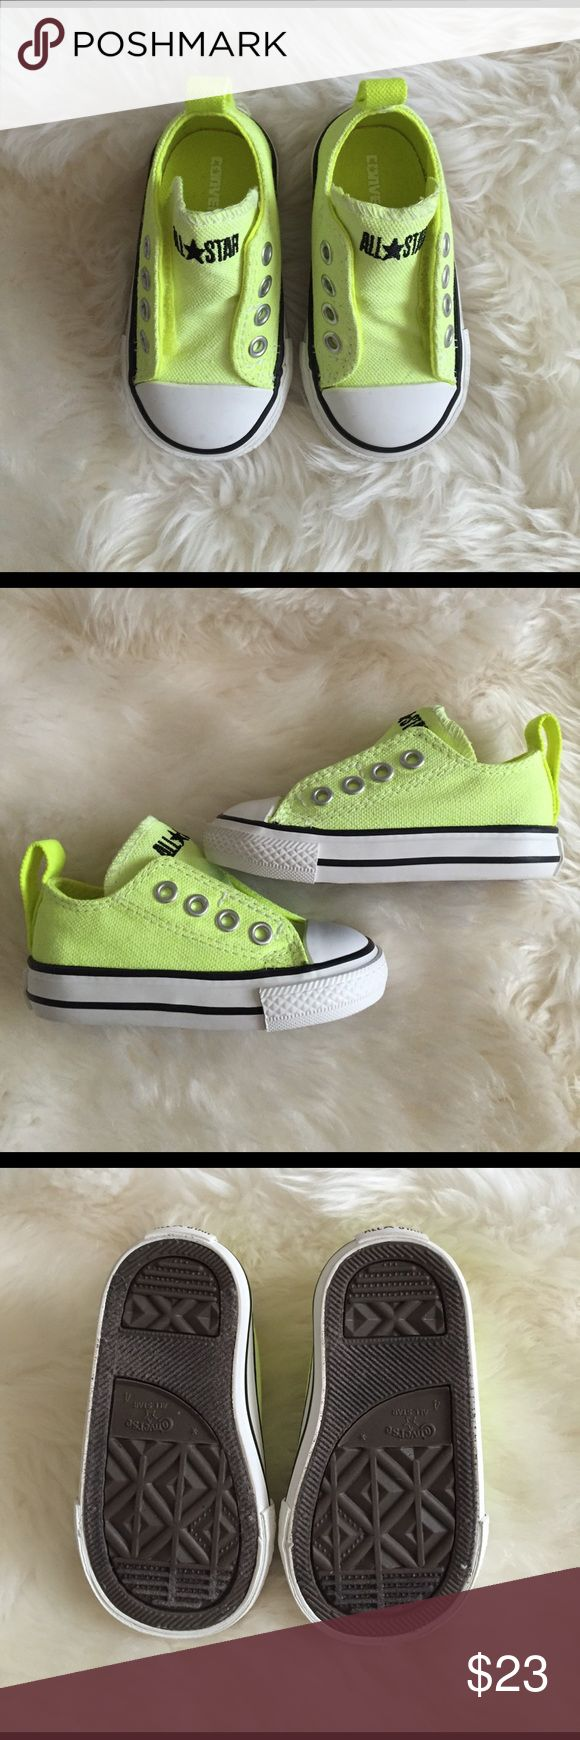 Converse baby/infant, 4 unisex neon converse shoes Brand new in box. Converse Shoes Baby & Walker